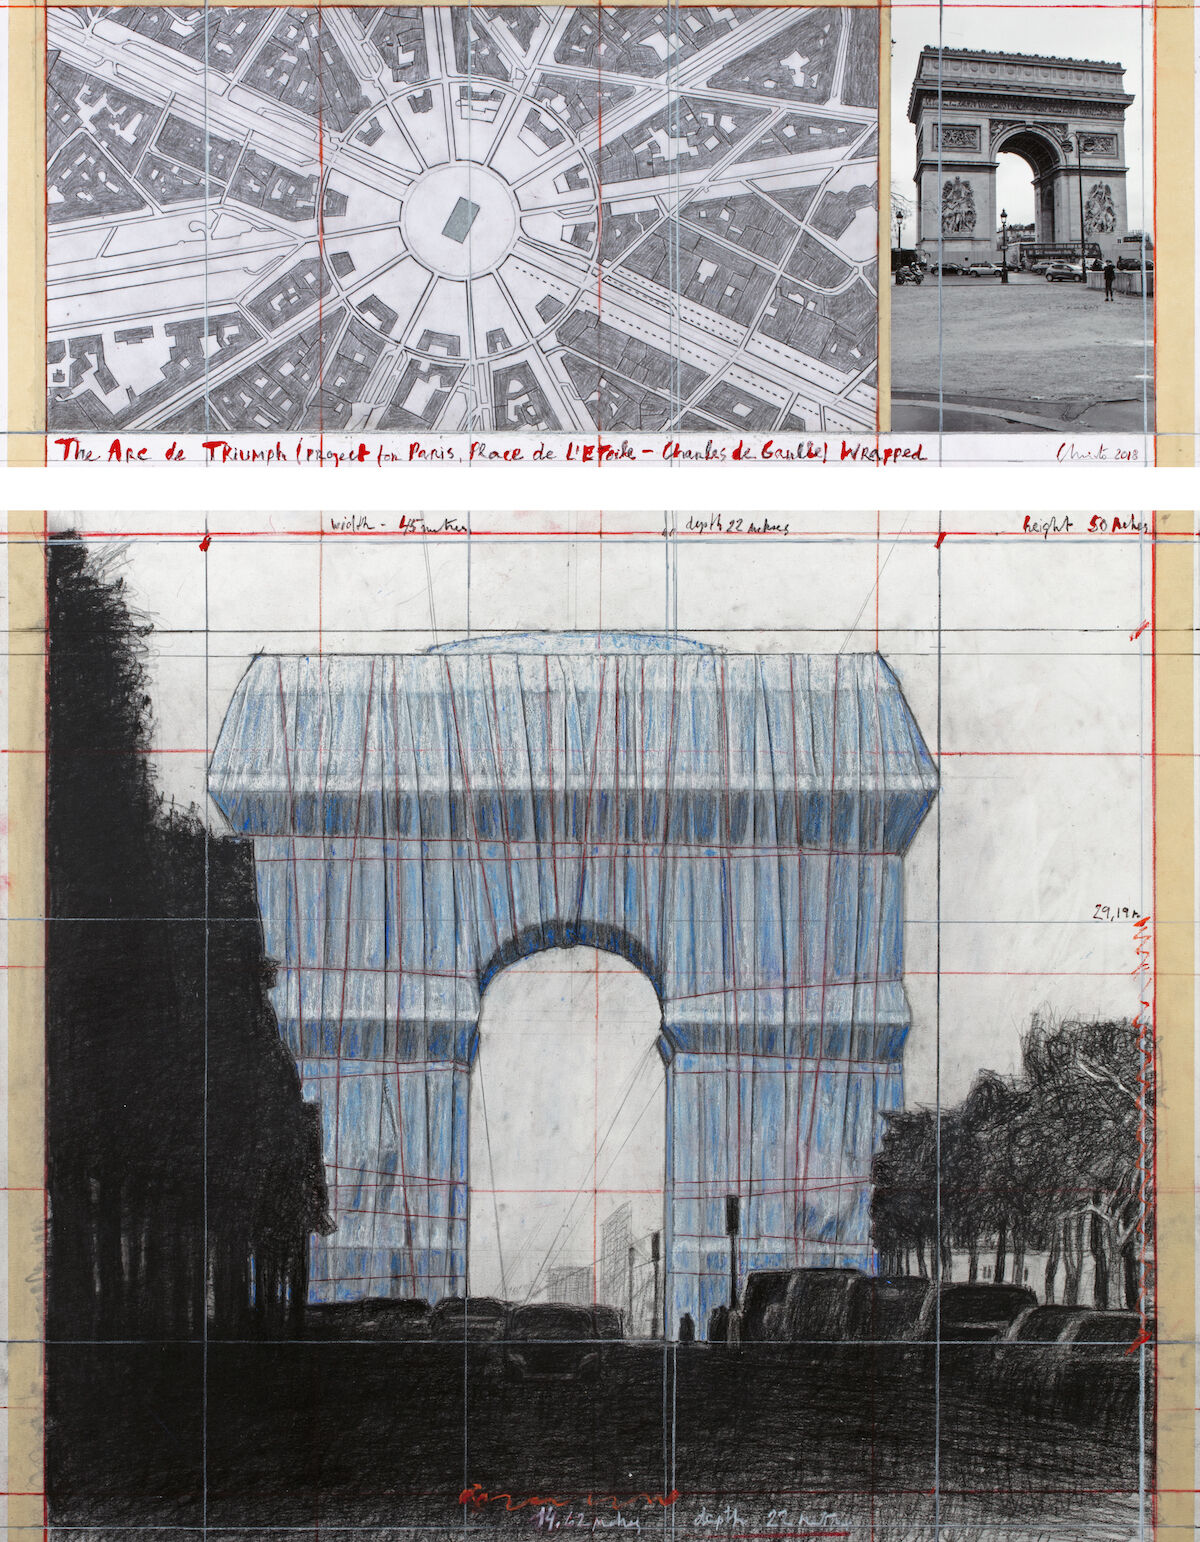 Christo, The Arc de Triumph (Project for Paris, Place de l'Etoile – Charles de Gaulle) Wrapped, 2018. Photo by André Grossmann, © 2018 Christo.